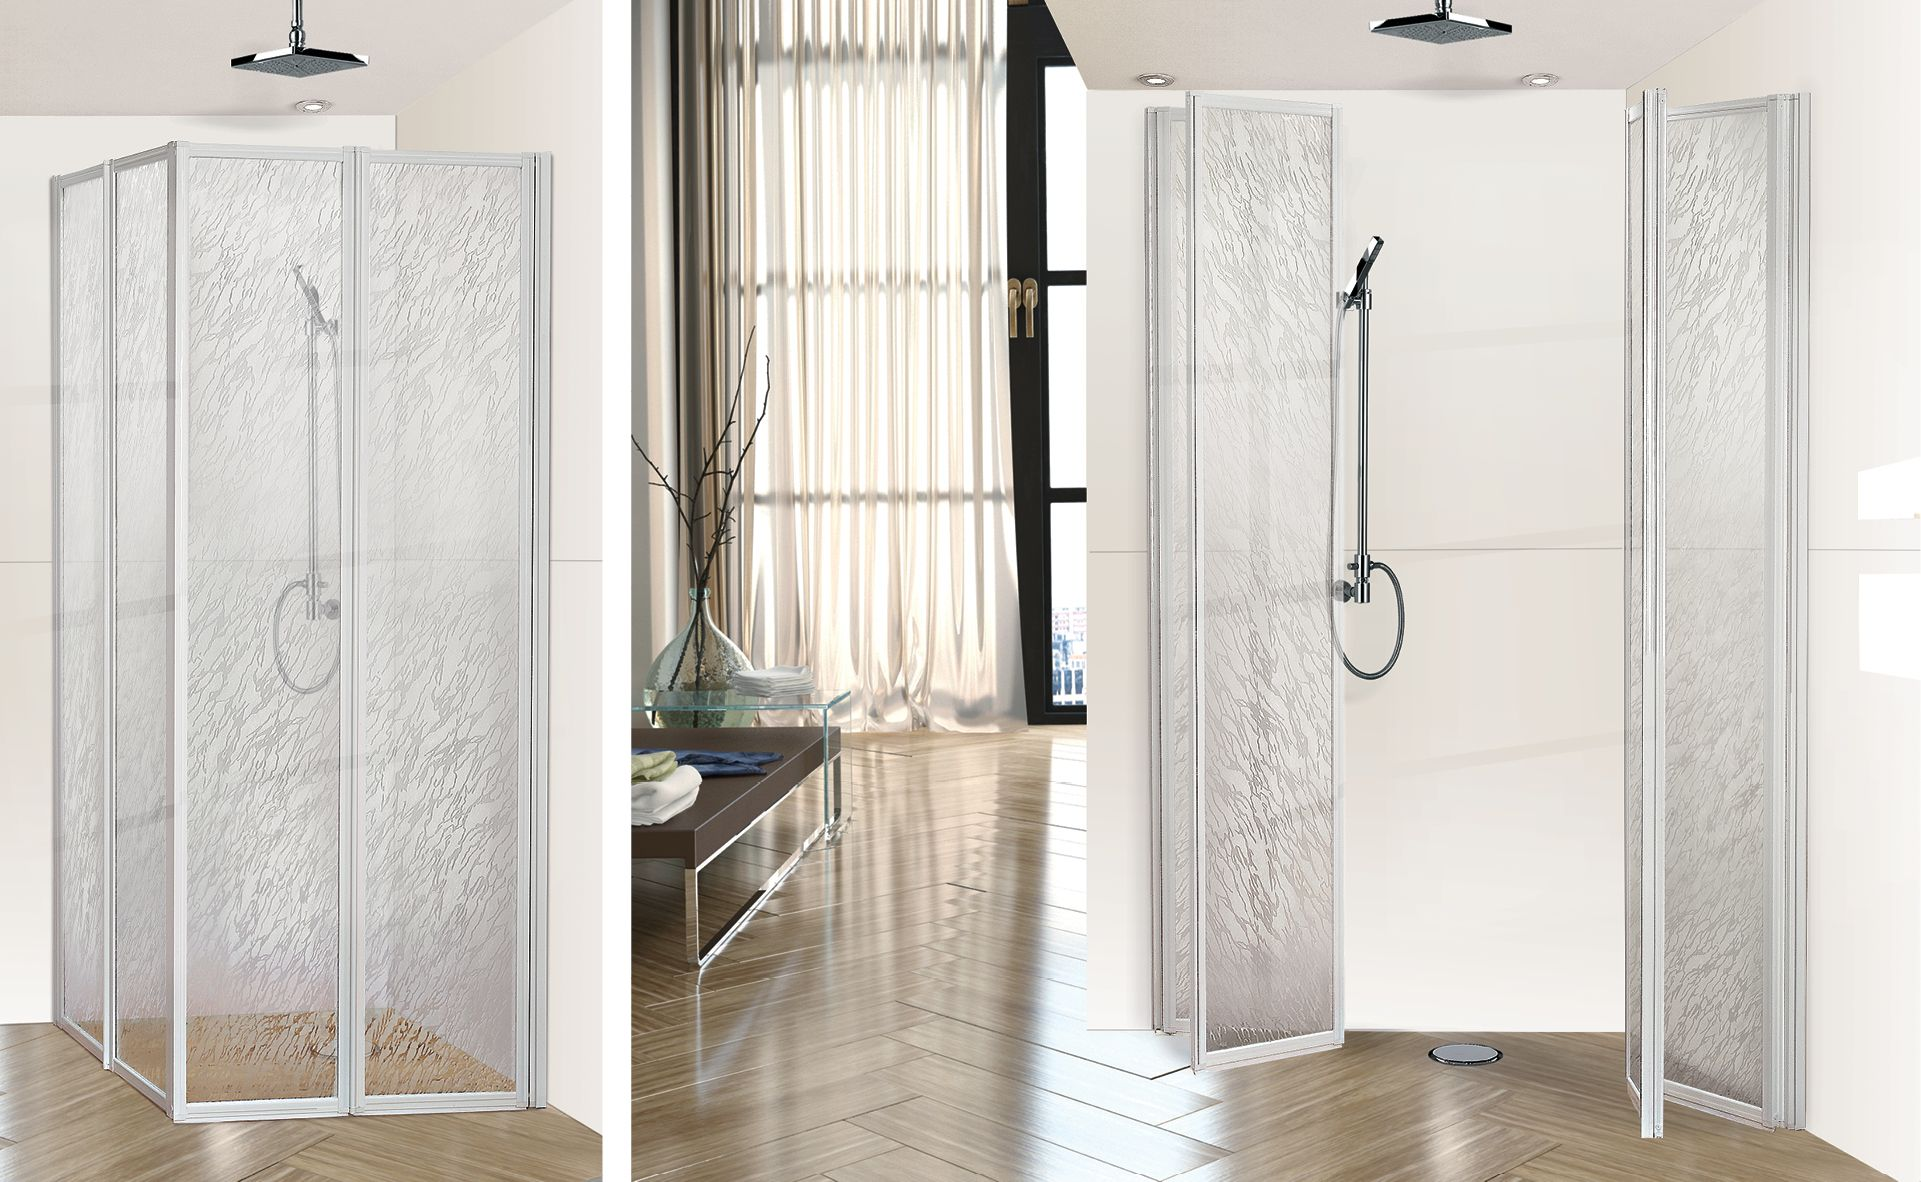 SERIE BOX A VANISHING SHOWER DOORS www